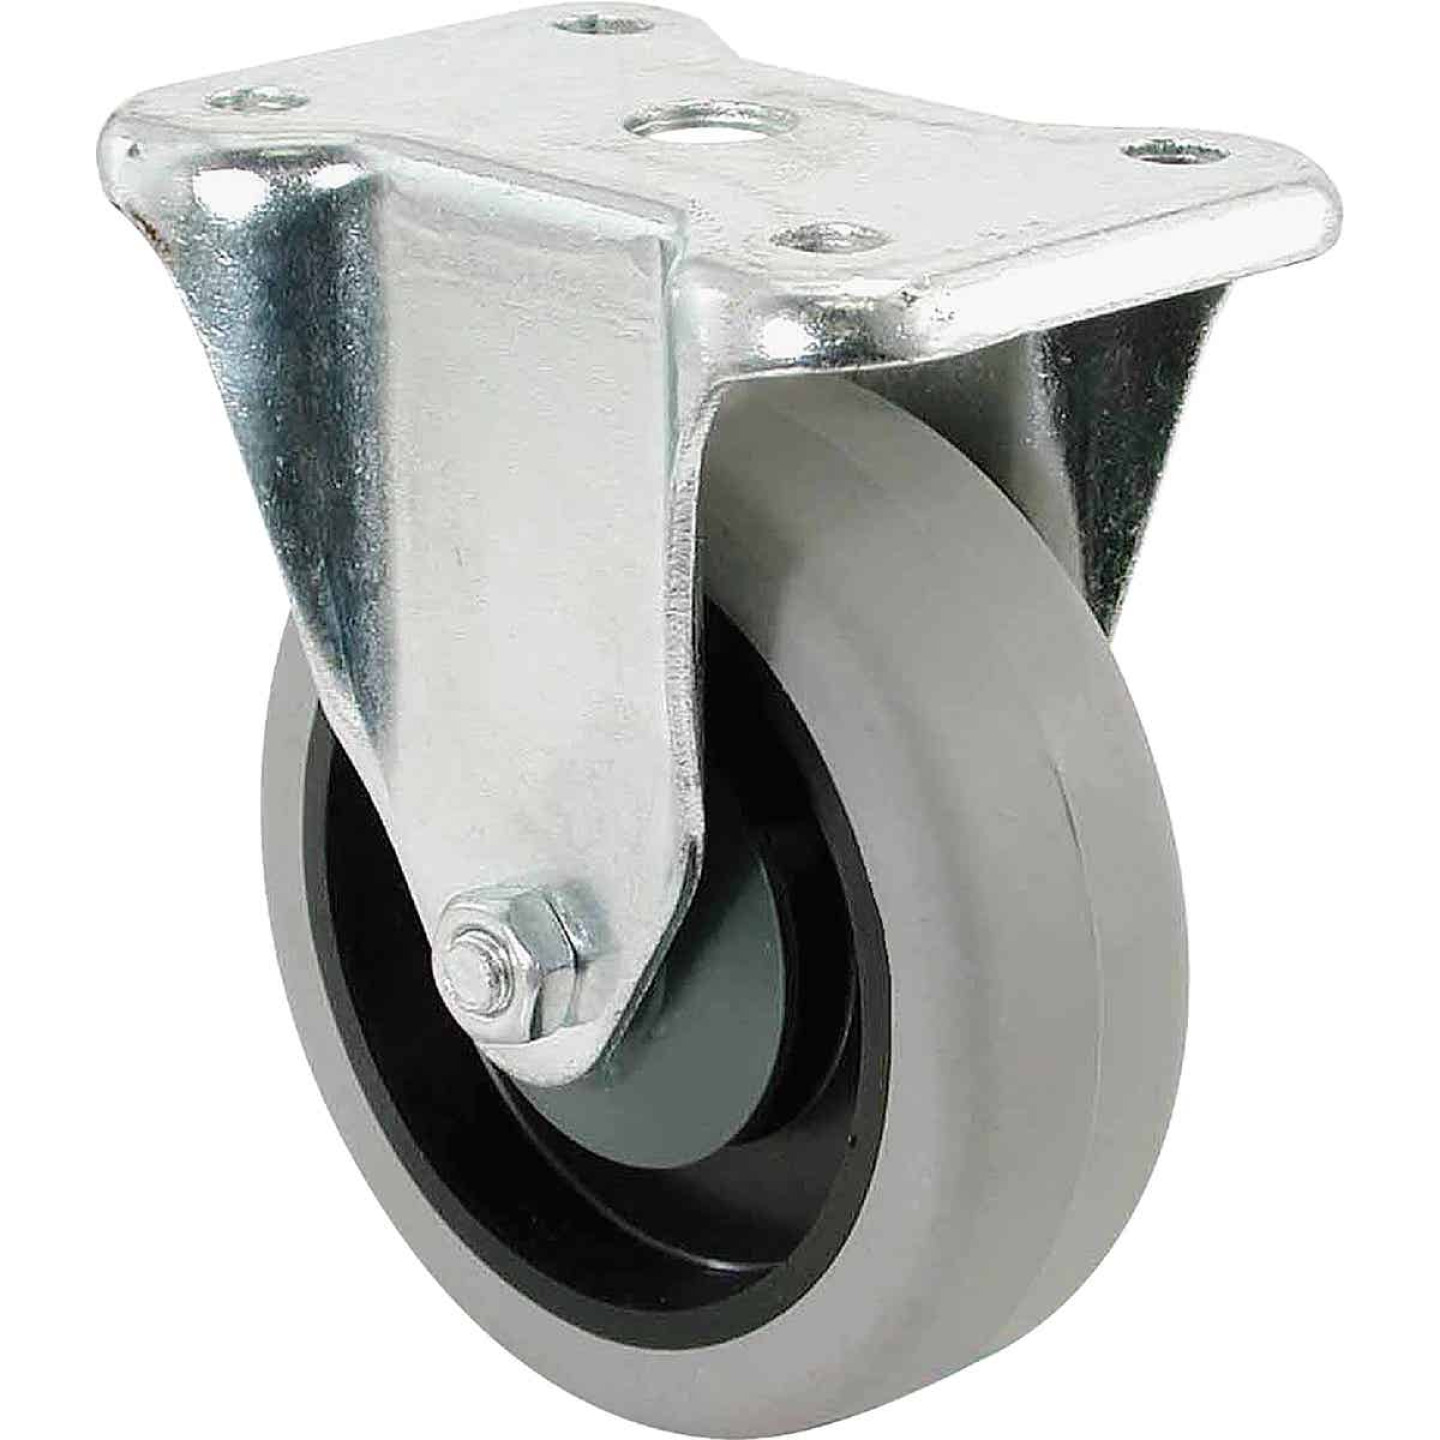 Shepherd 4 In. Thermoplastic Rigid Plate Caster Image 1